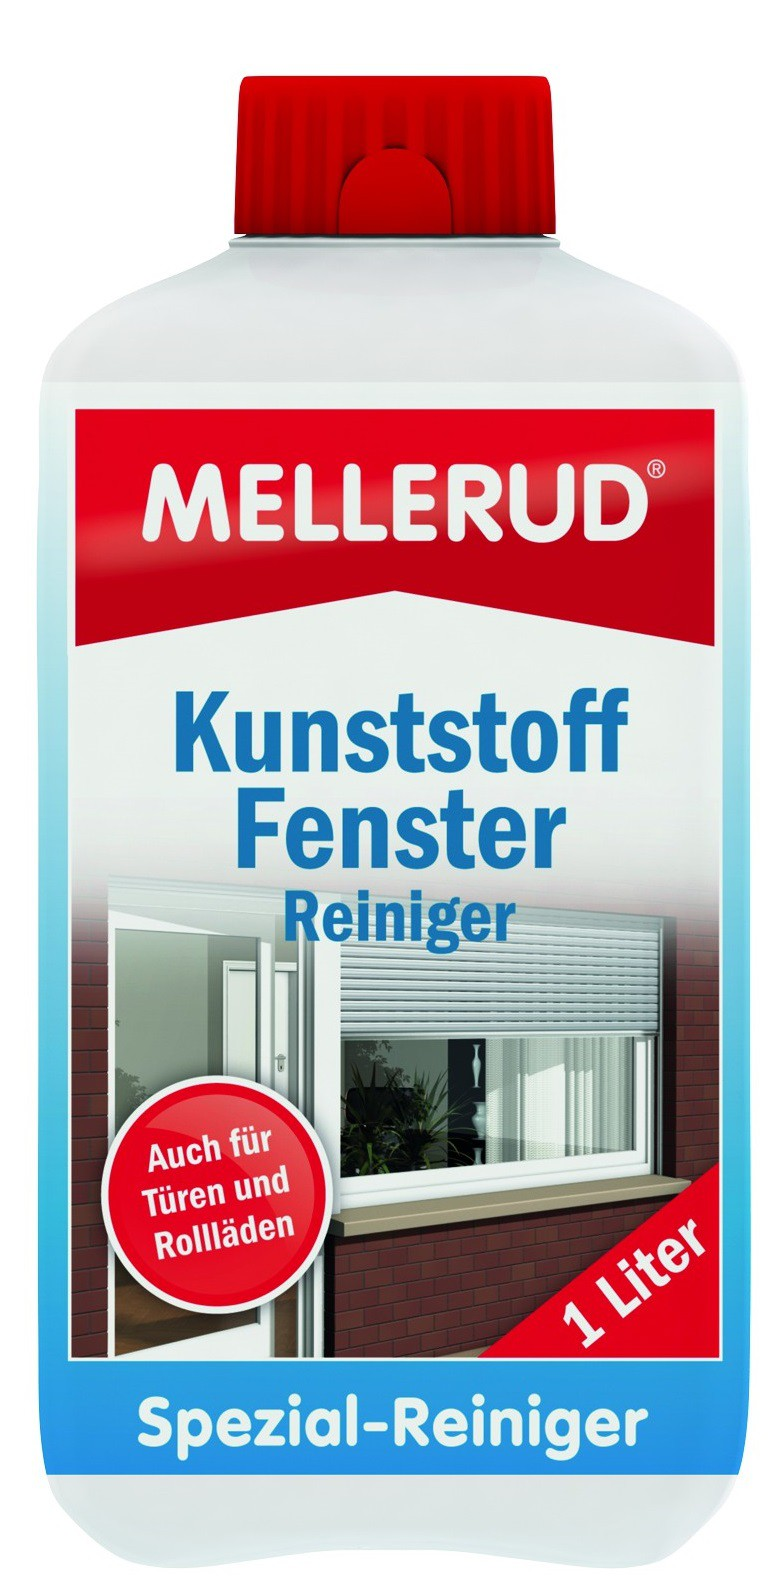 mellerud kunststoff fenster reiniger 1000 ml flasche online kaufen. Black Bedroom Furniture Sets. Home Design Ideas